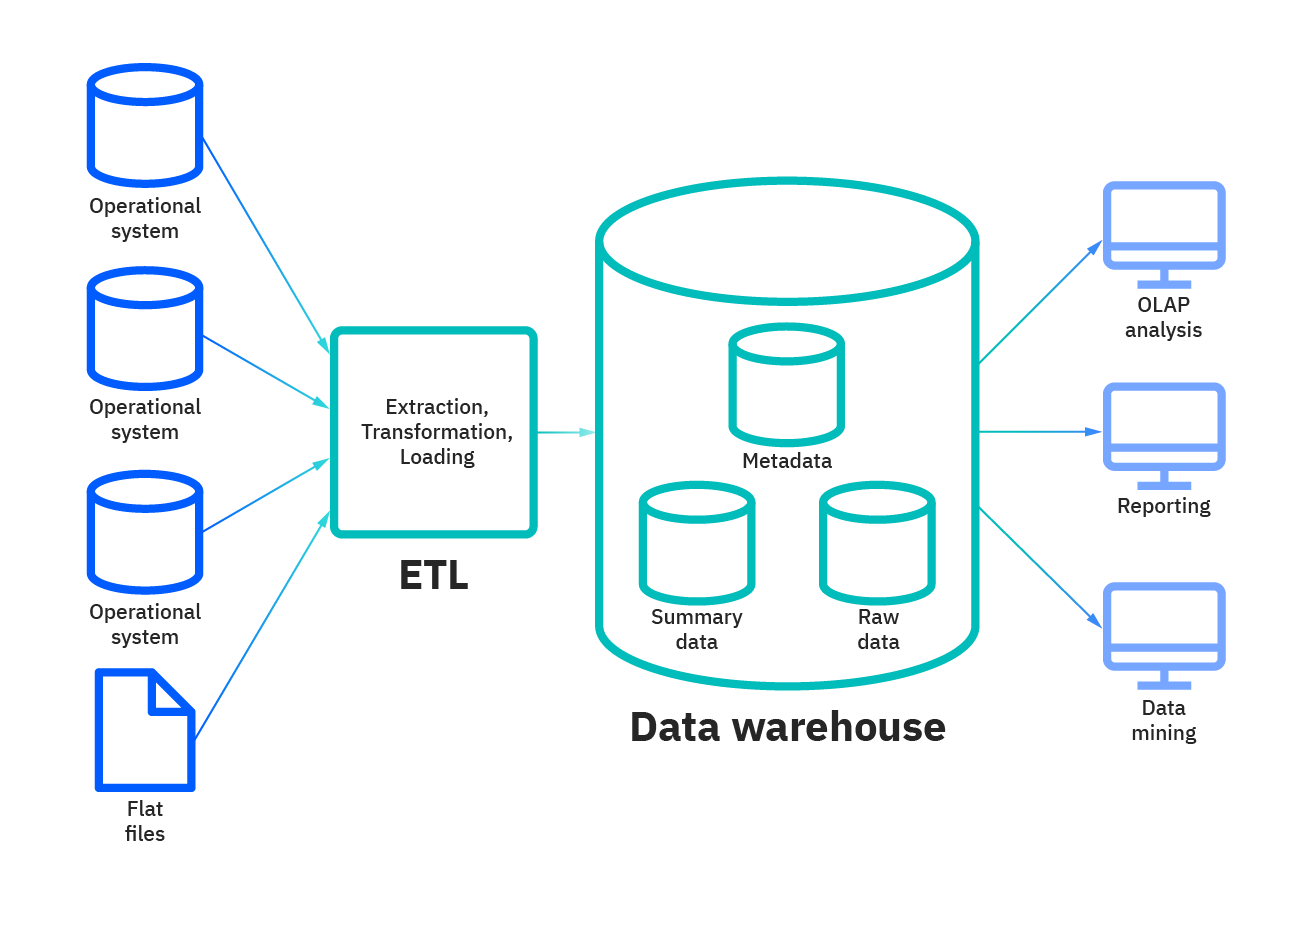 Architectural flow of data into and out of a data warehouse